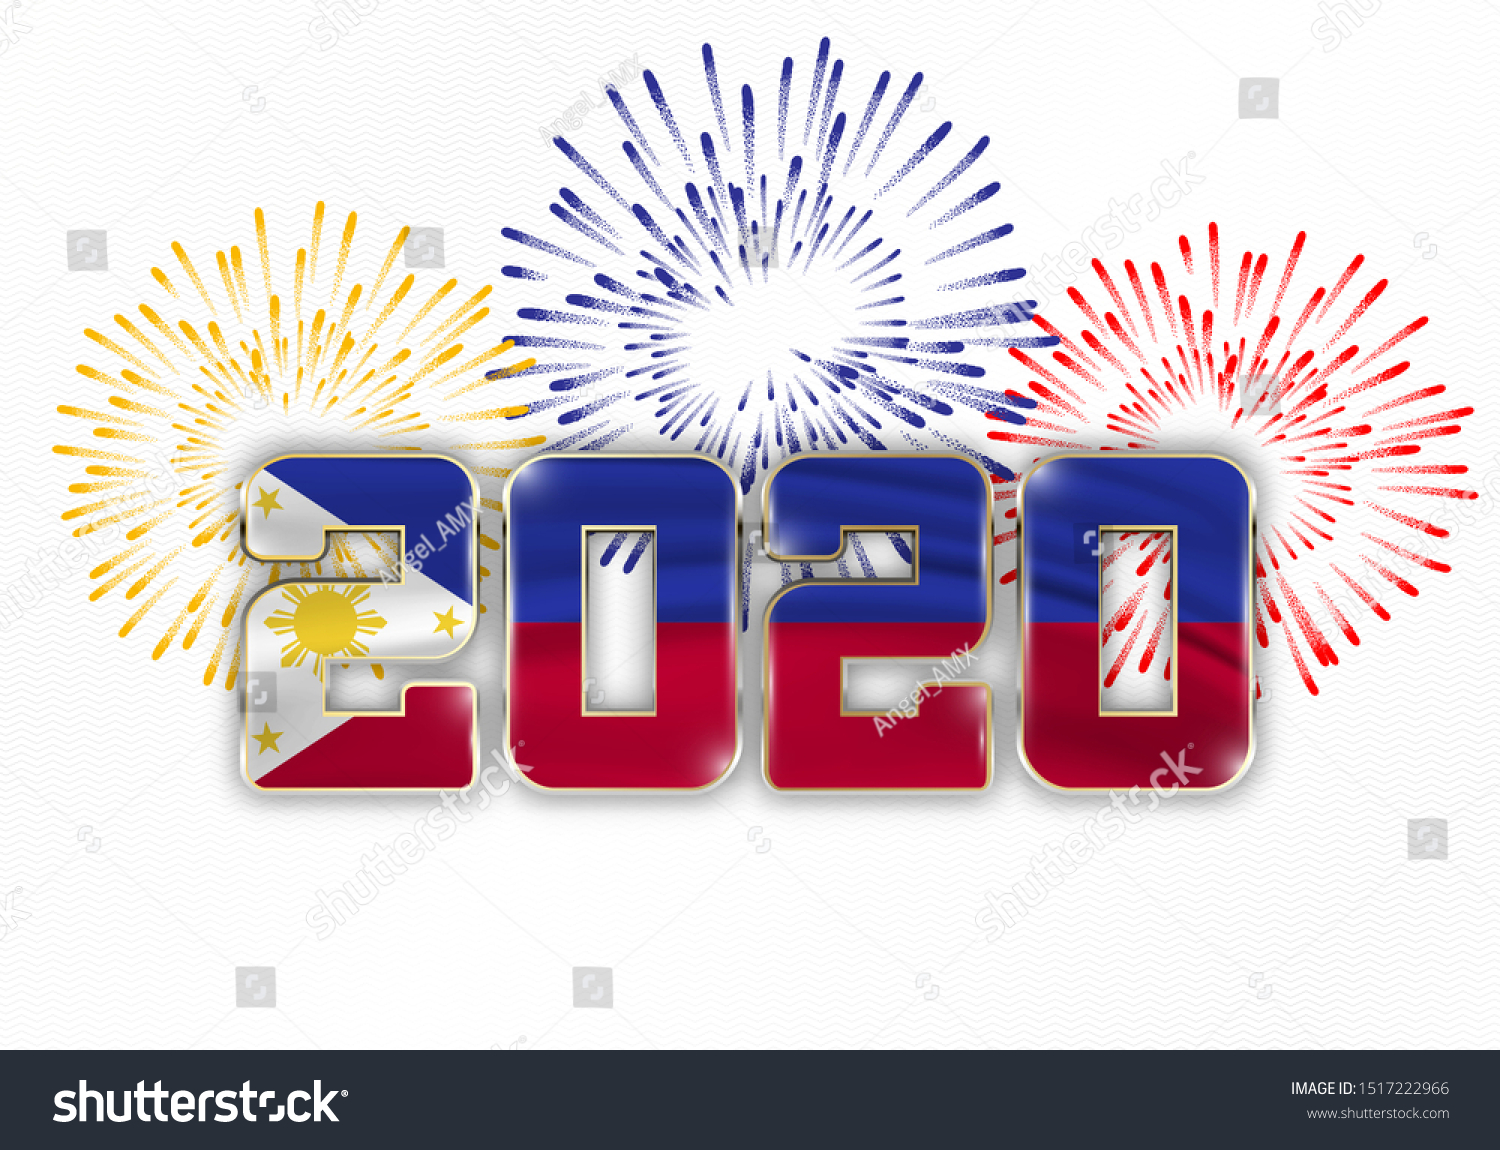 happy new year merry christmas 2020 stock vector royalty free 1517222966 https www shutterstock com image vector happy new year merry christmas 2020 1517222966